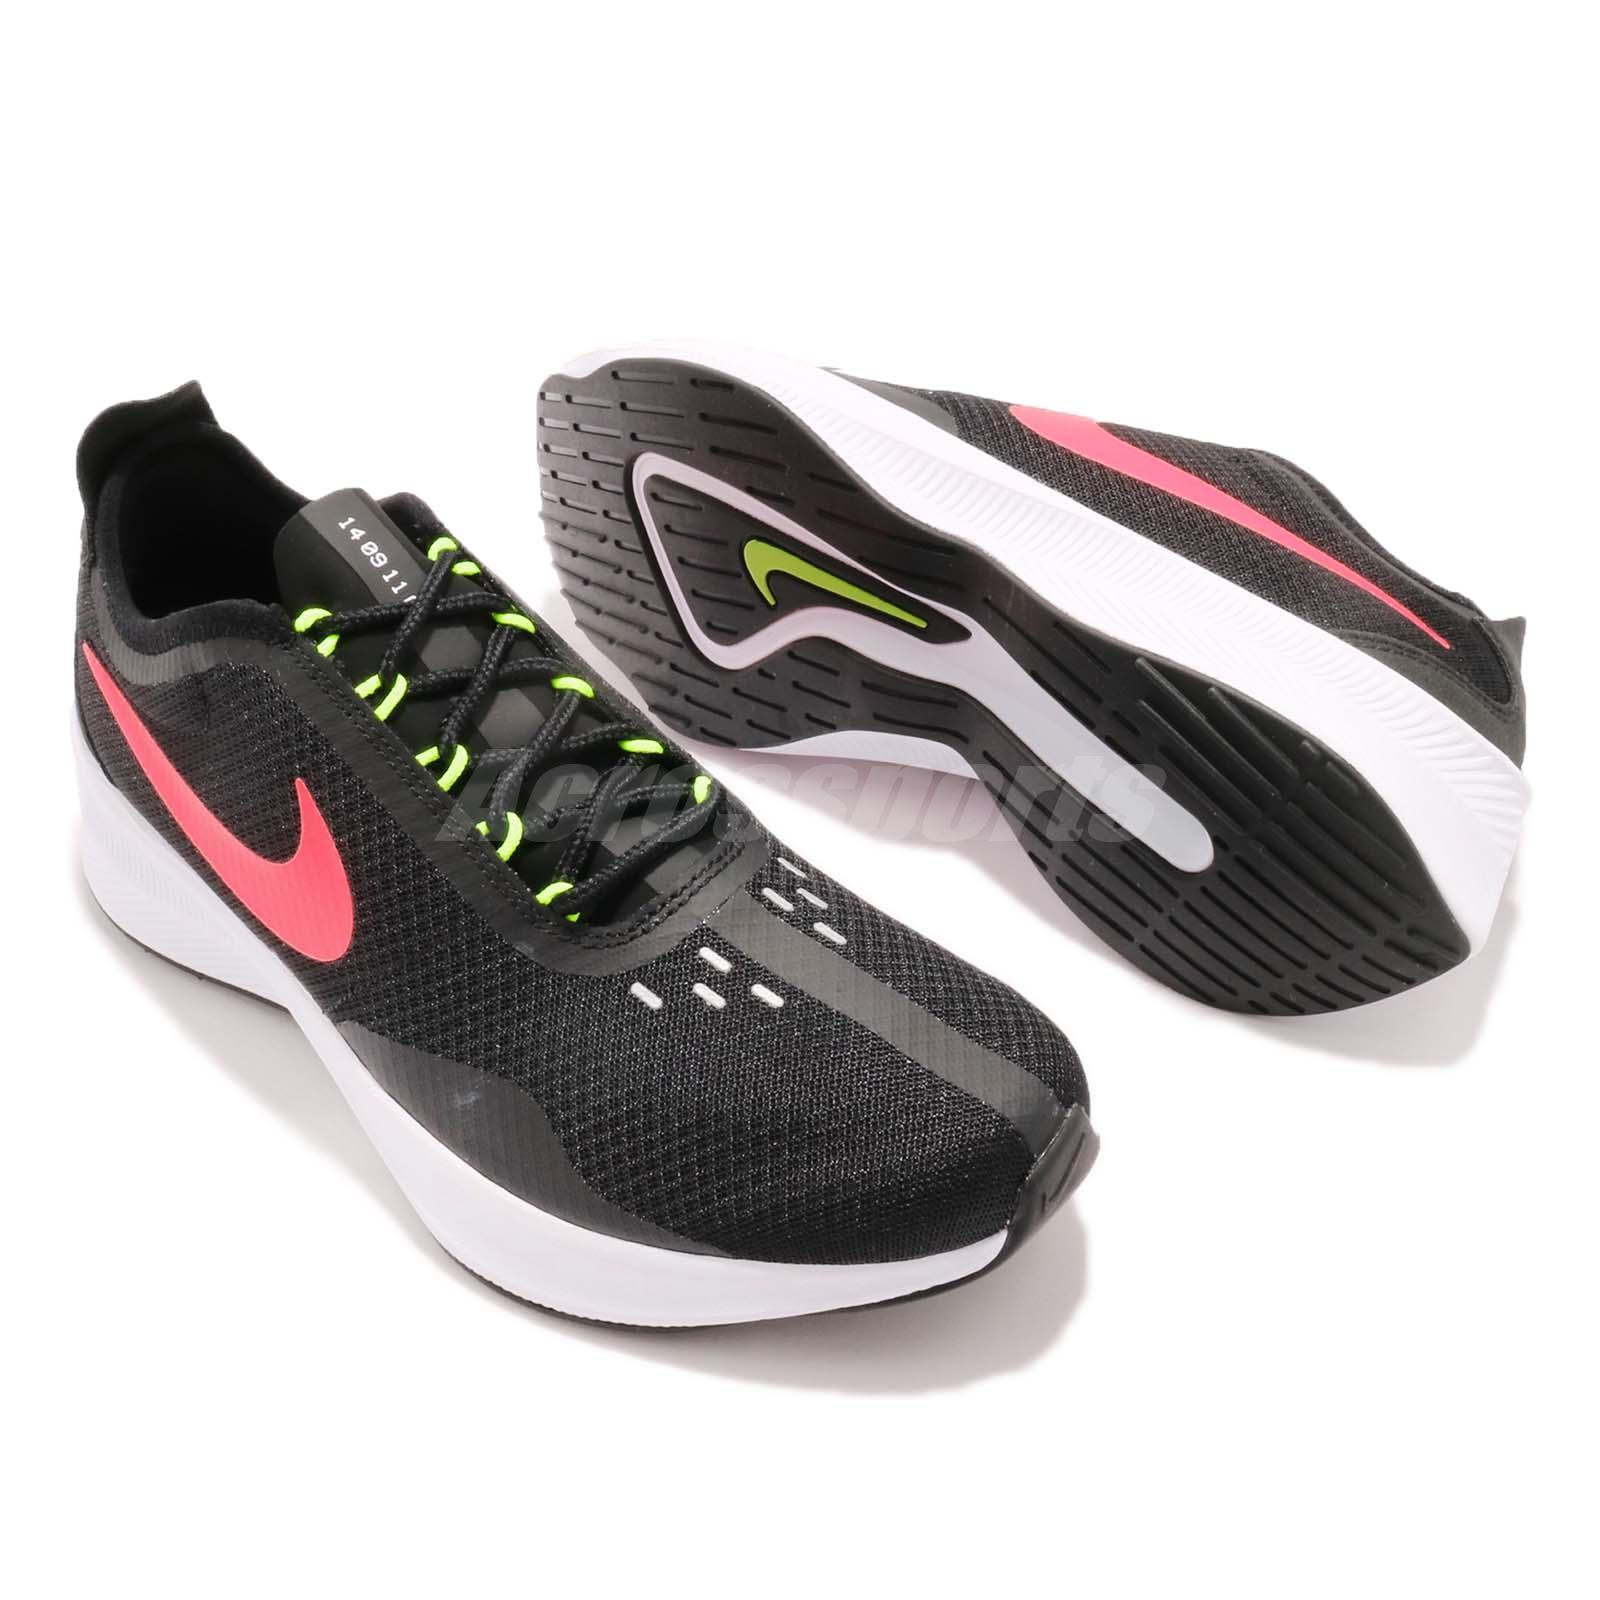 41d59f54a54c8 Nike W EXP-Z07 Black Solar Red White Women Running Shoes Sneakers ...